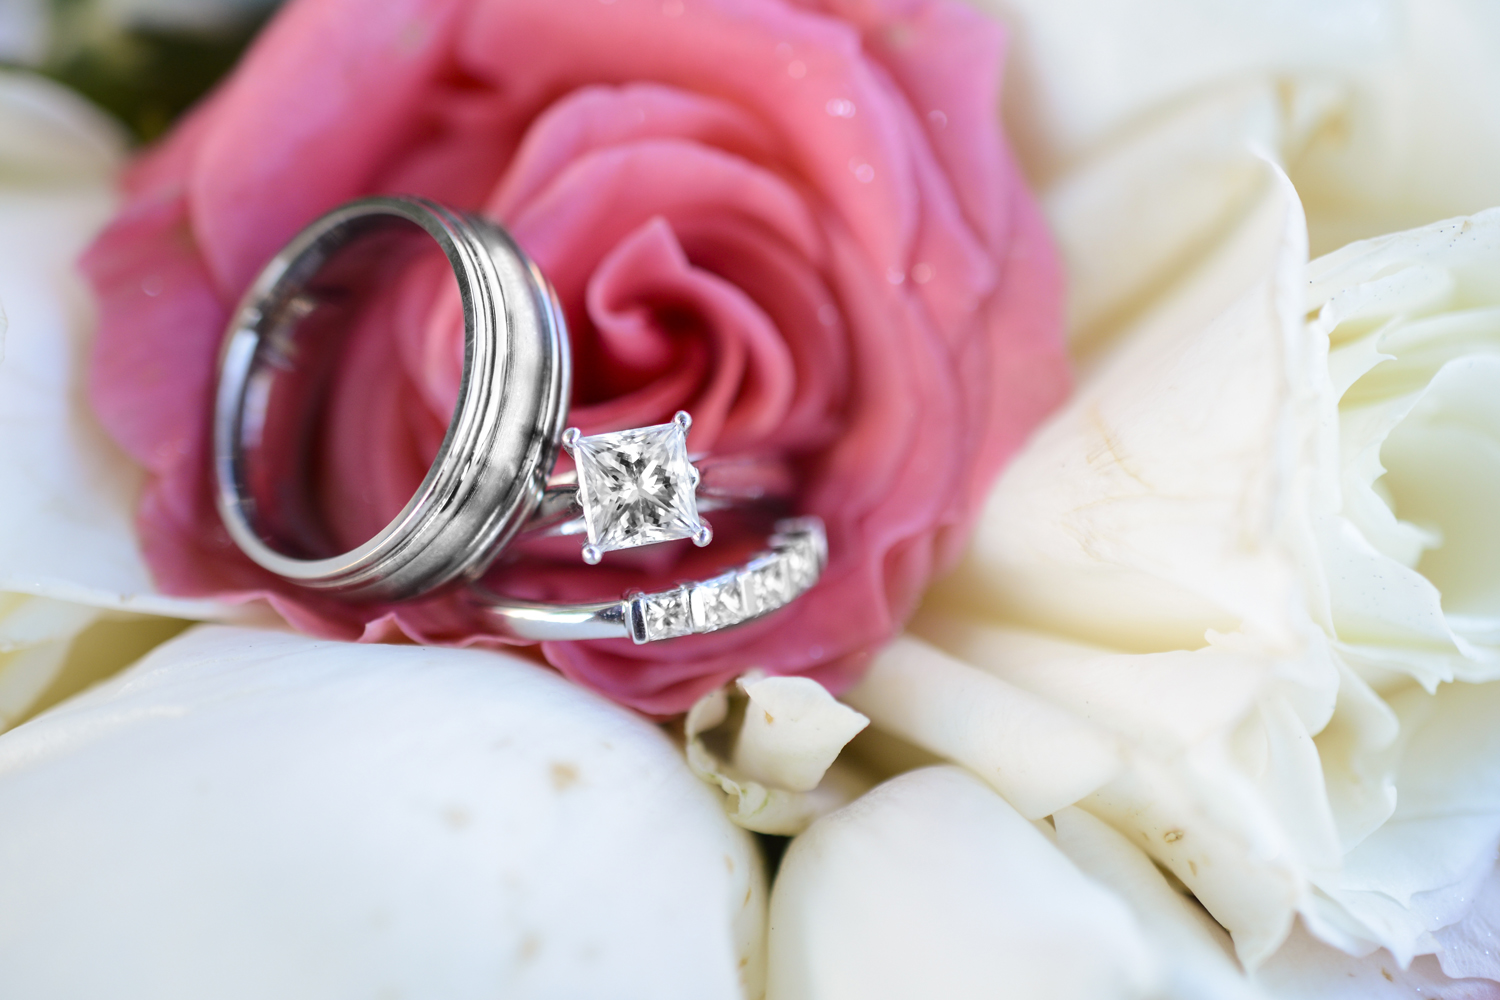 Ring shot in coral pink and white roses at a wedding